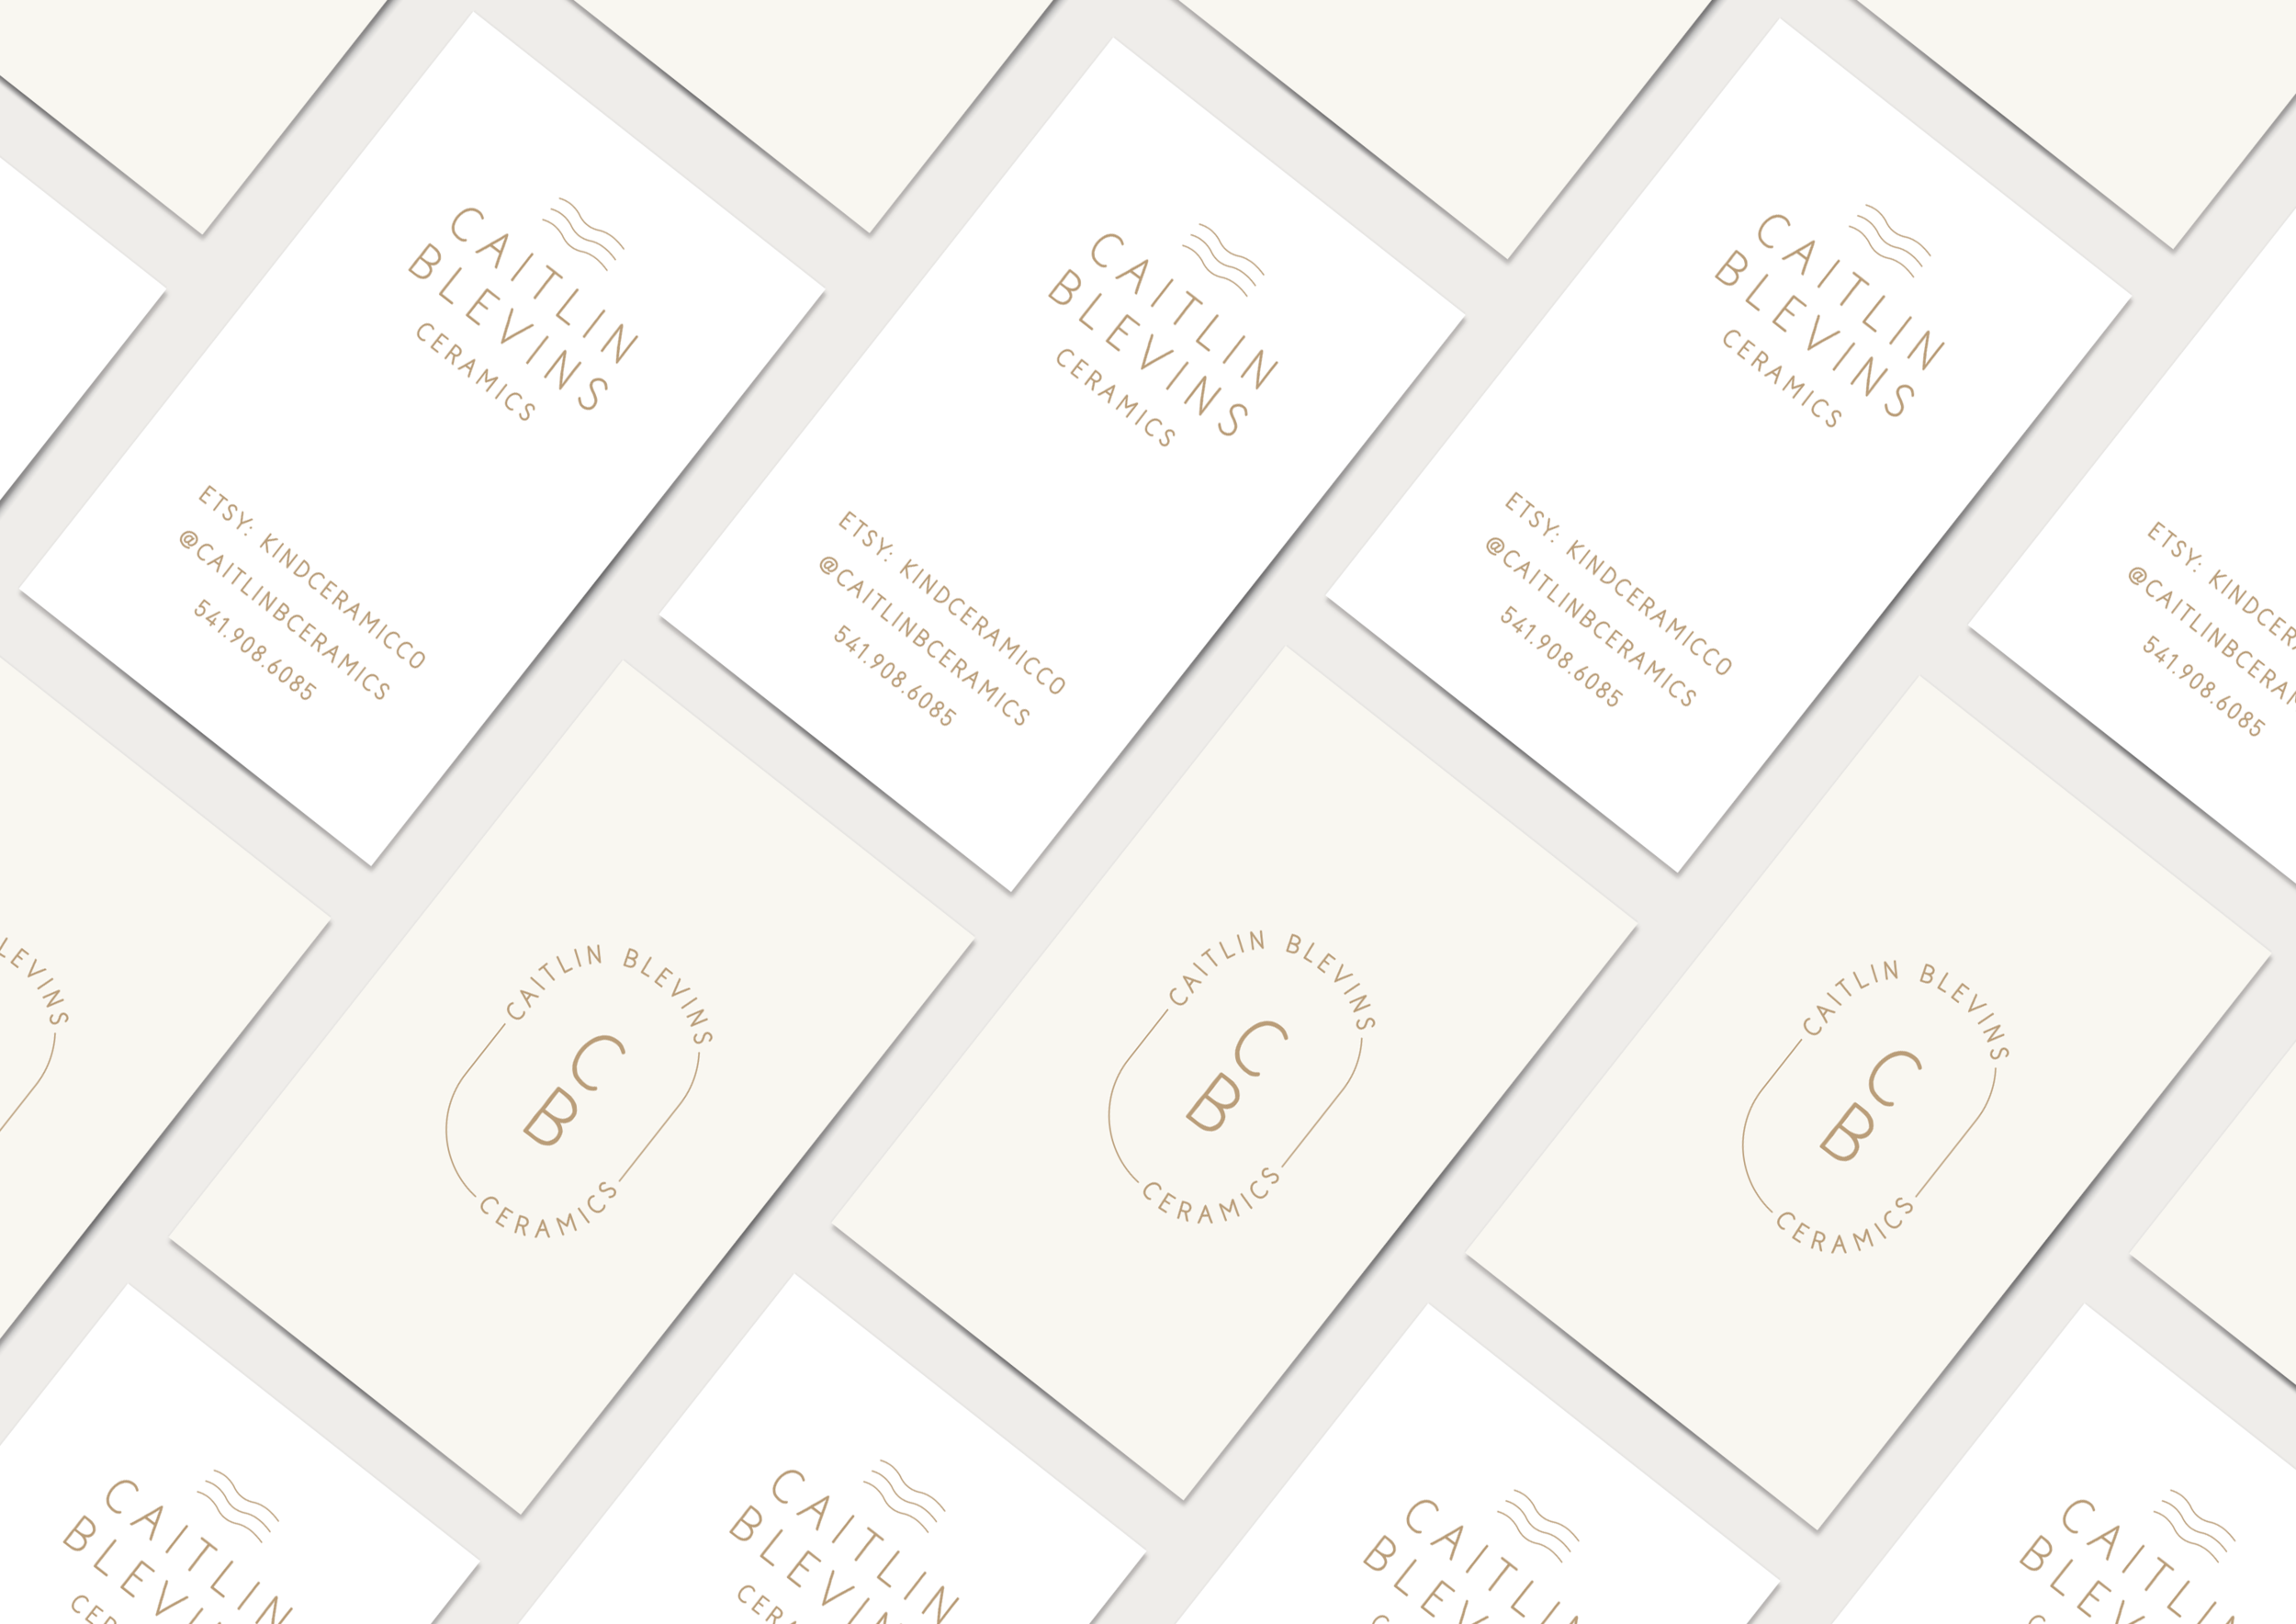 CB-Business-Cards-Mockup.png